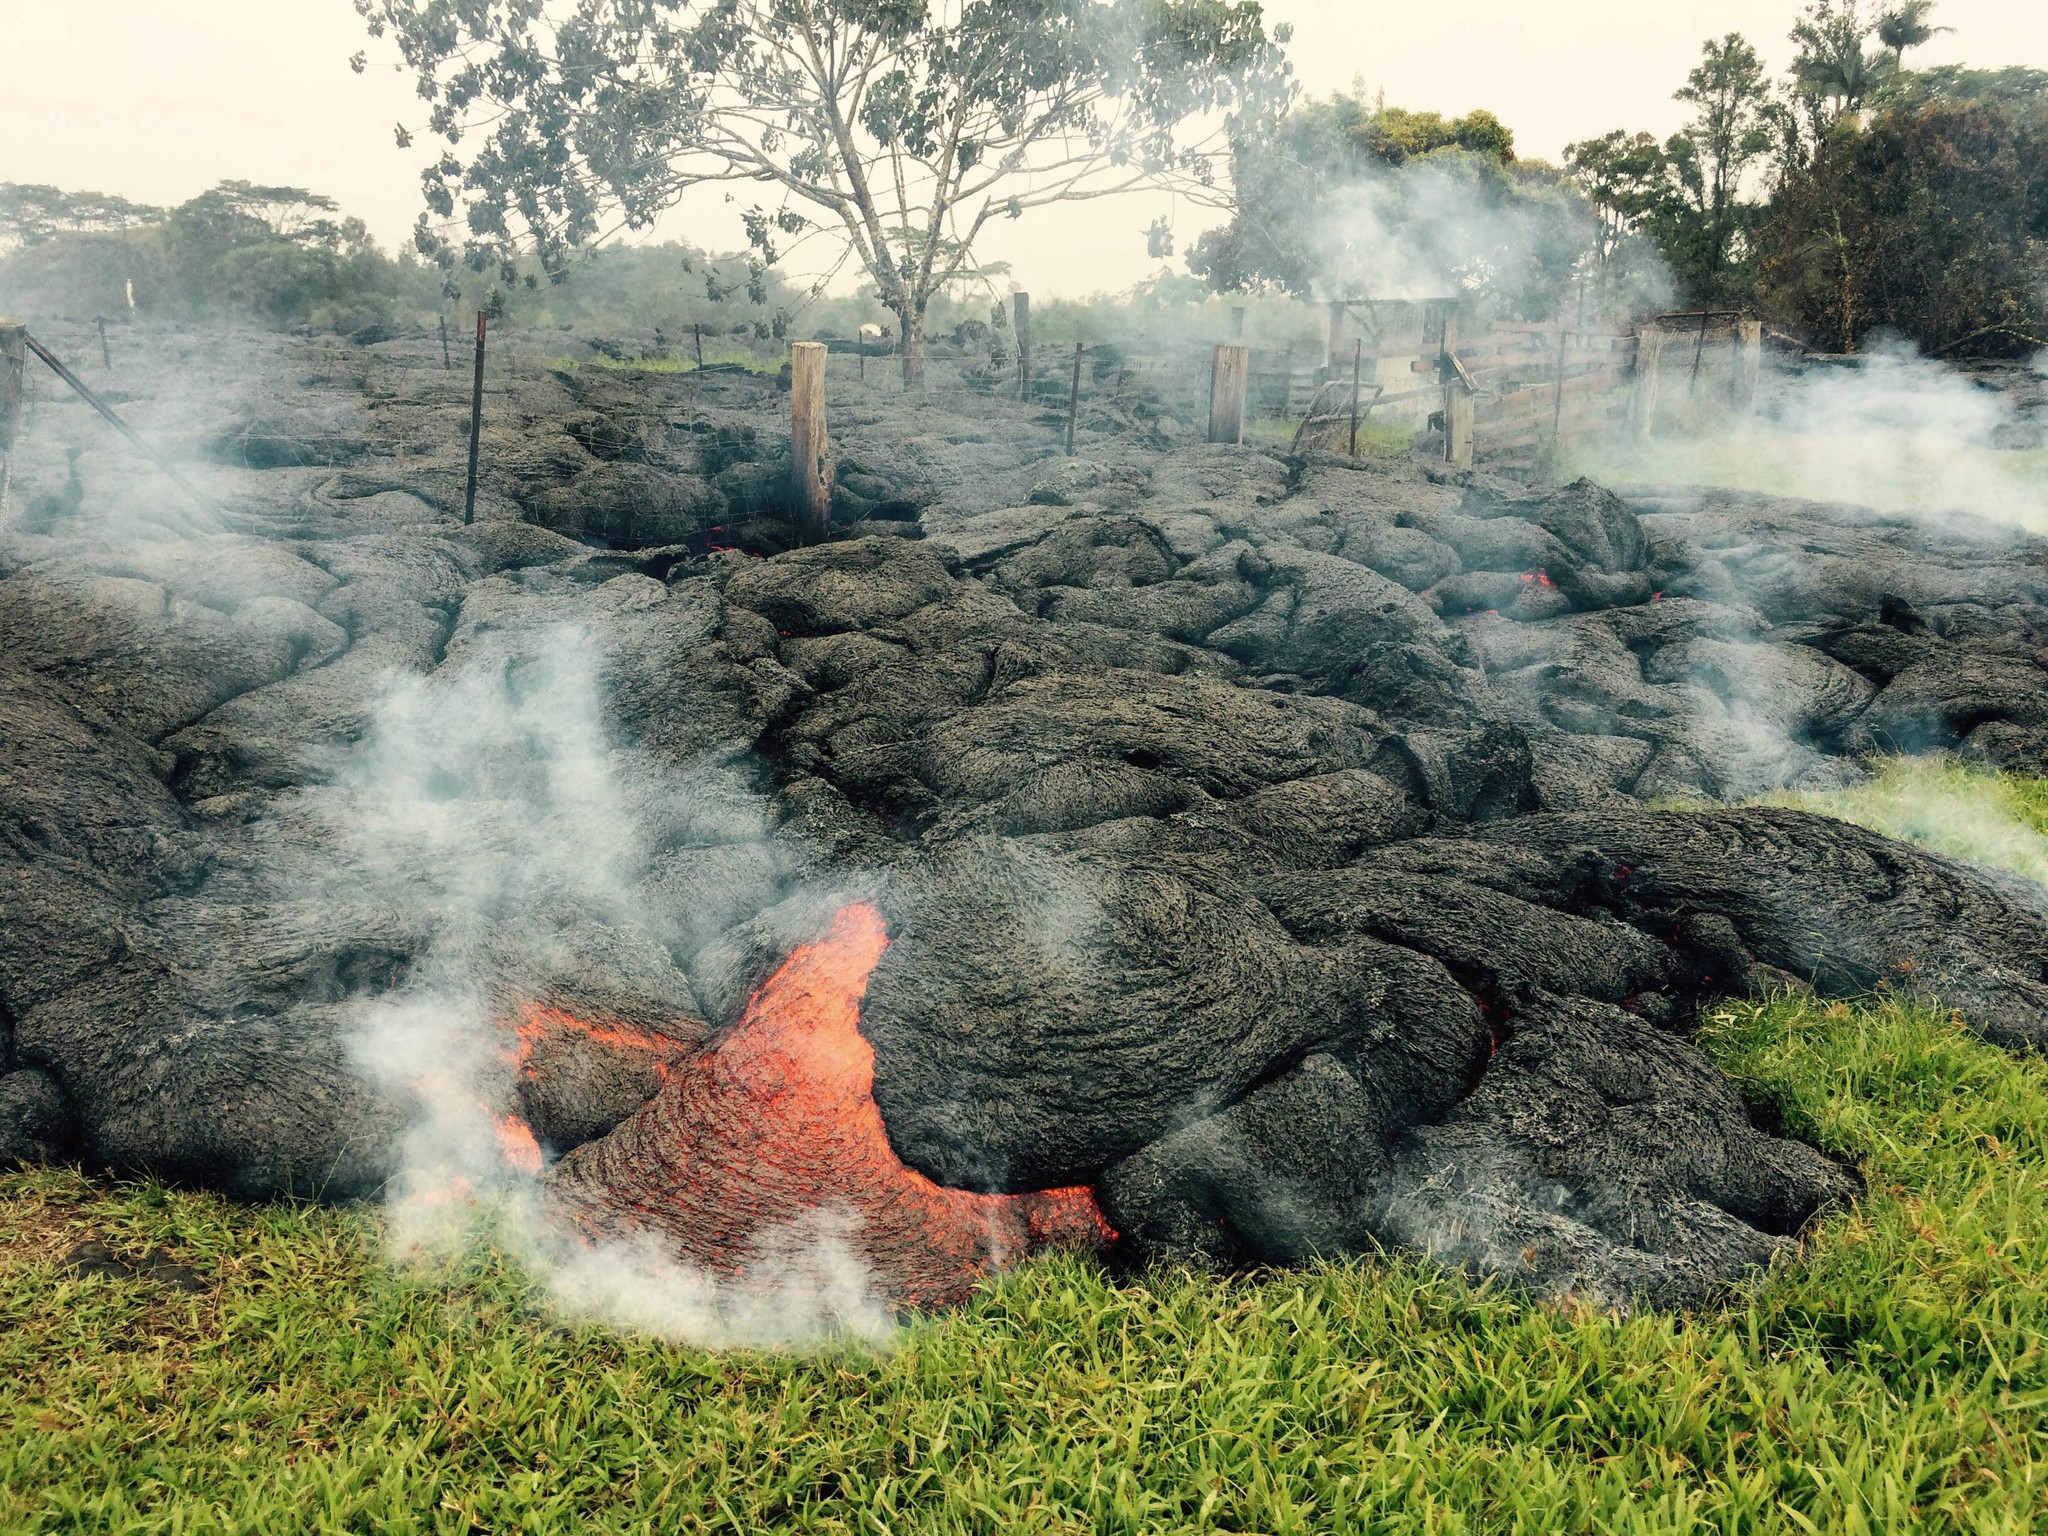 Hawaii pair took photos, prodded fiery lava with golf clubs: police